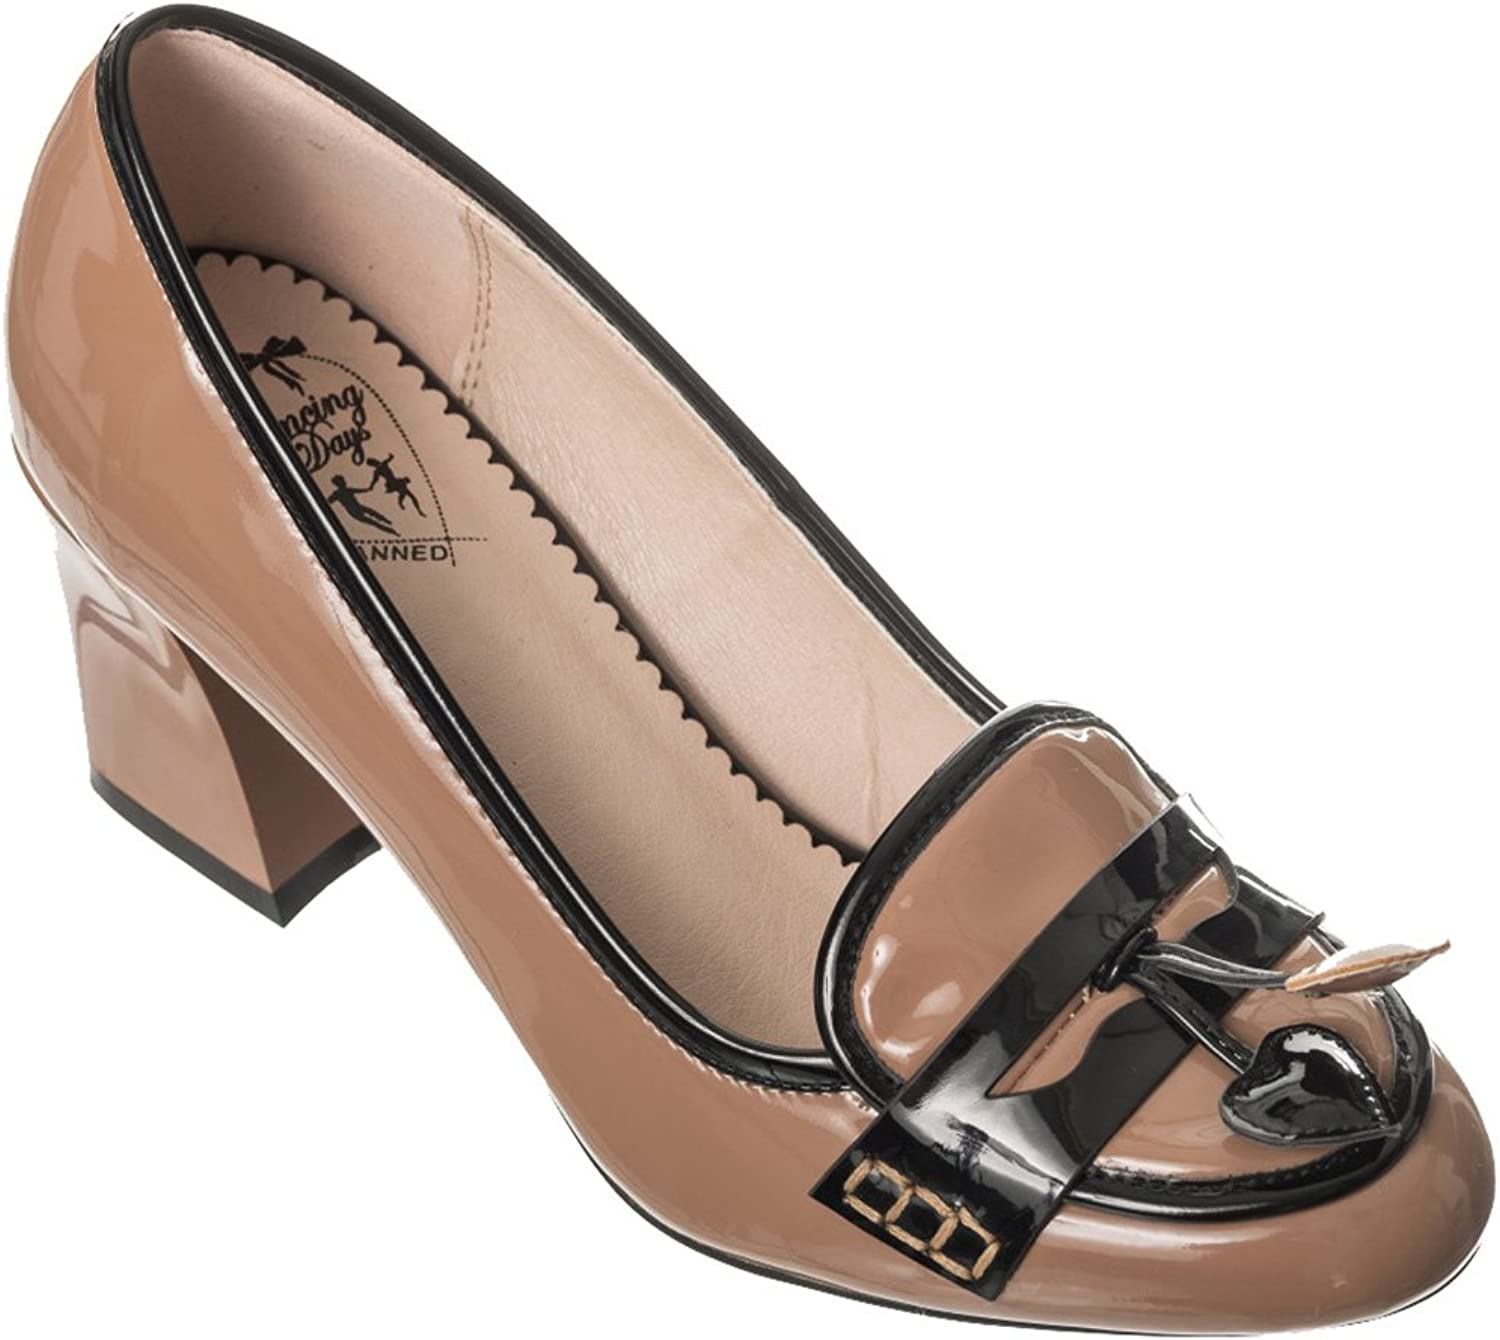 Dancing Days Pumps - - - Lust For Life Praline  25aa53